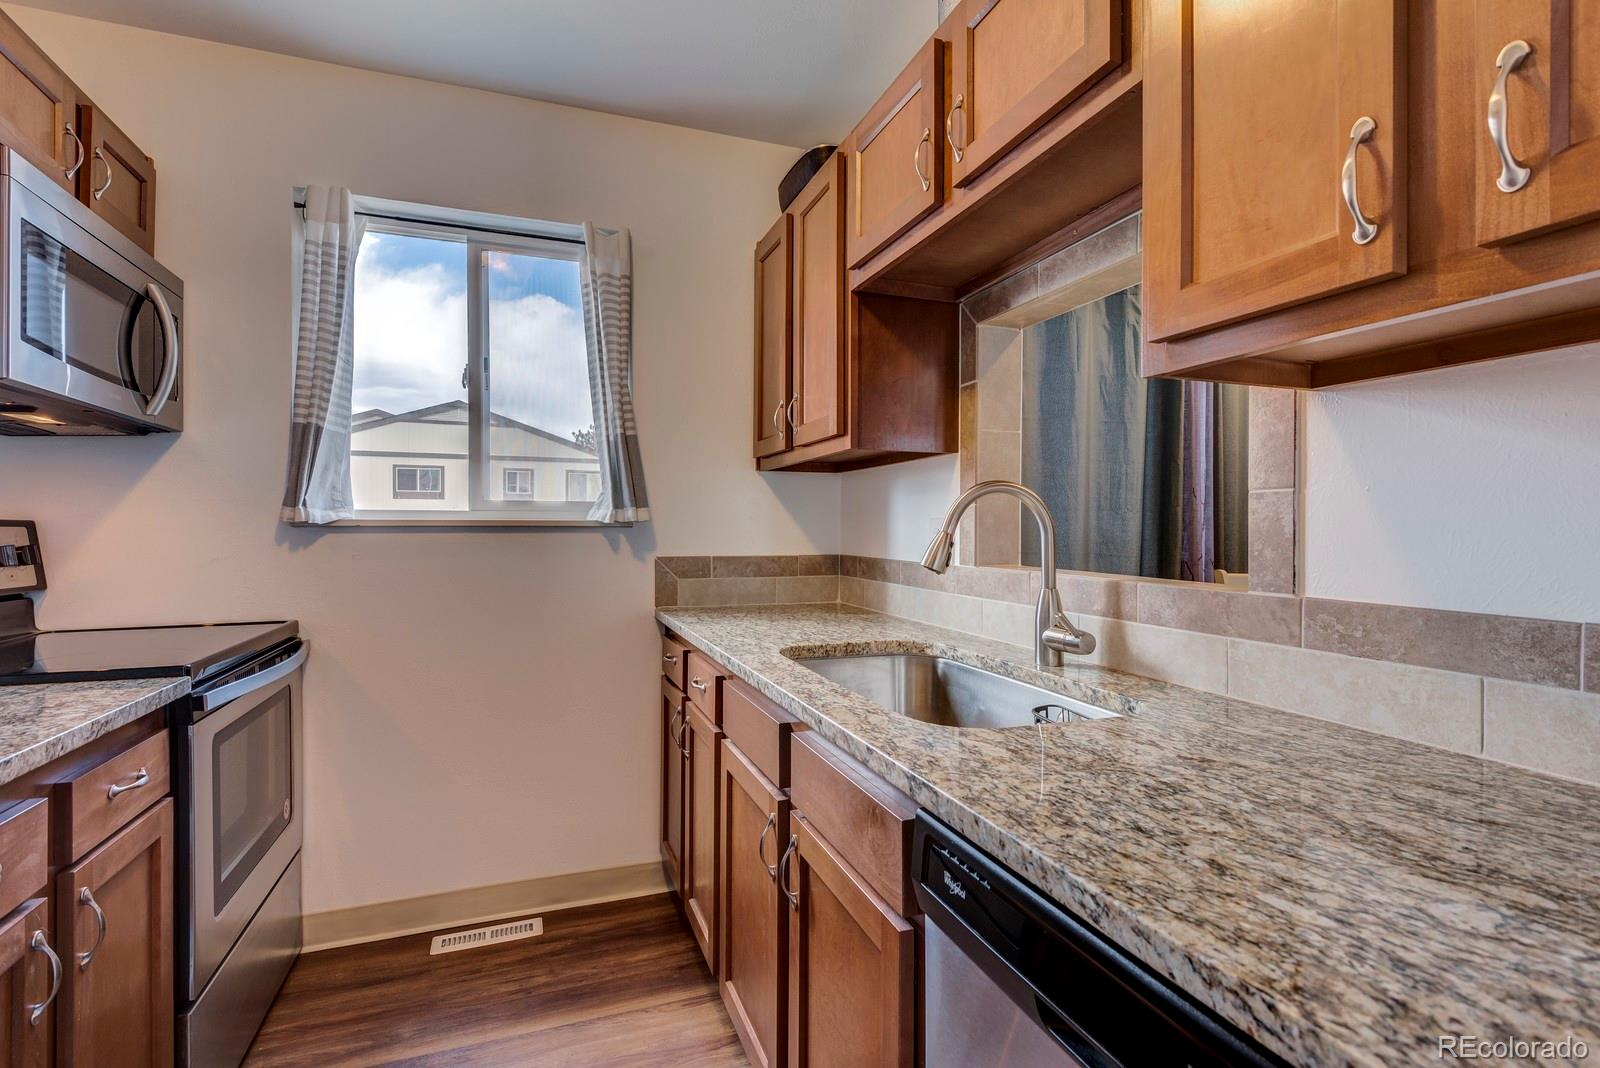 MLS# 2804784 - 4 - 8792 Chase Drive #16, Arvada, CO 80003